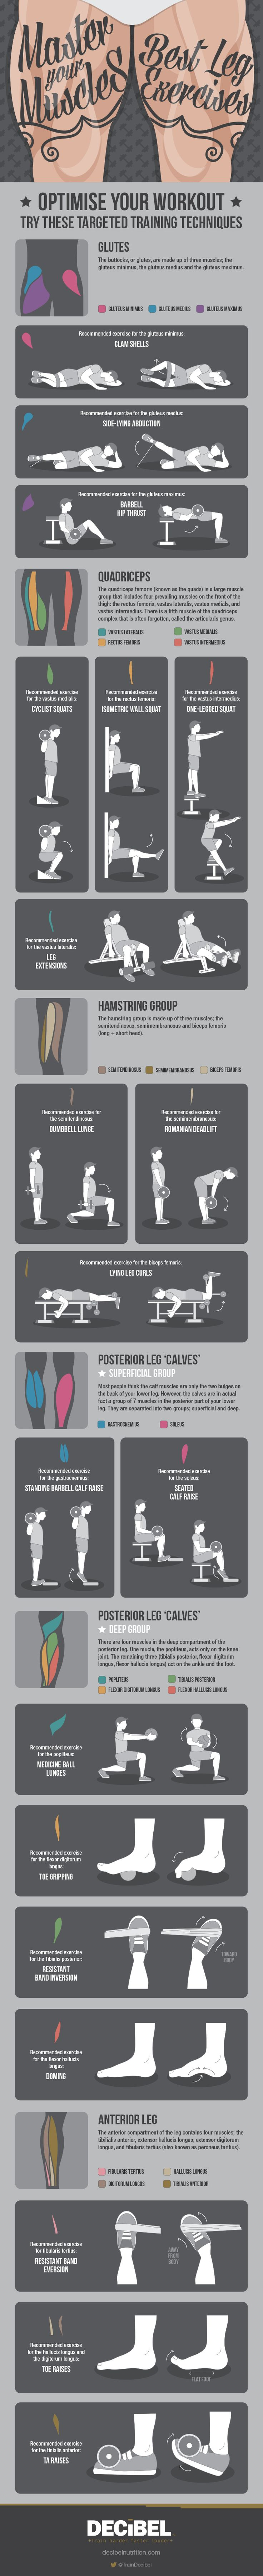 Master Your Muscles: Best Leg Exercises - Imgur